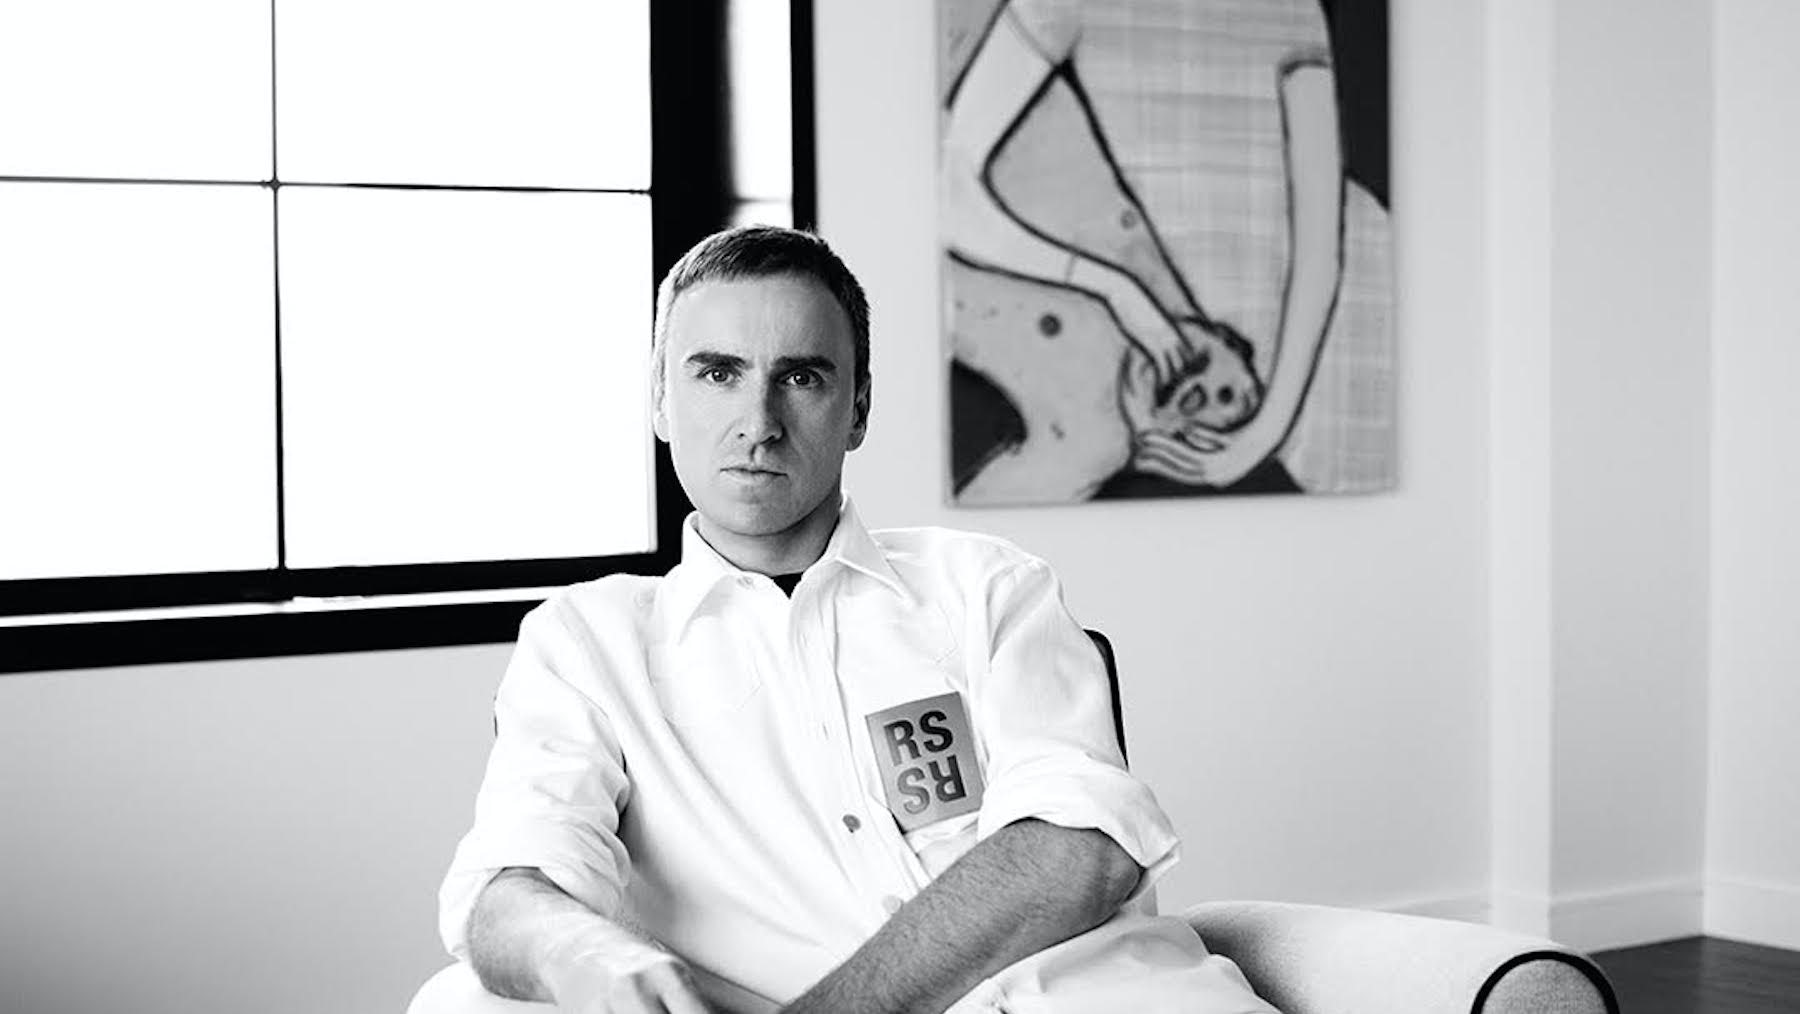 Raf Simons, chief creative officer of Calvin Klein | Photo: Willy Vanderperre, courtesy Calvin Klein